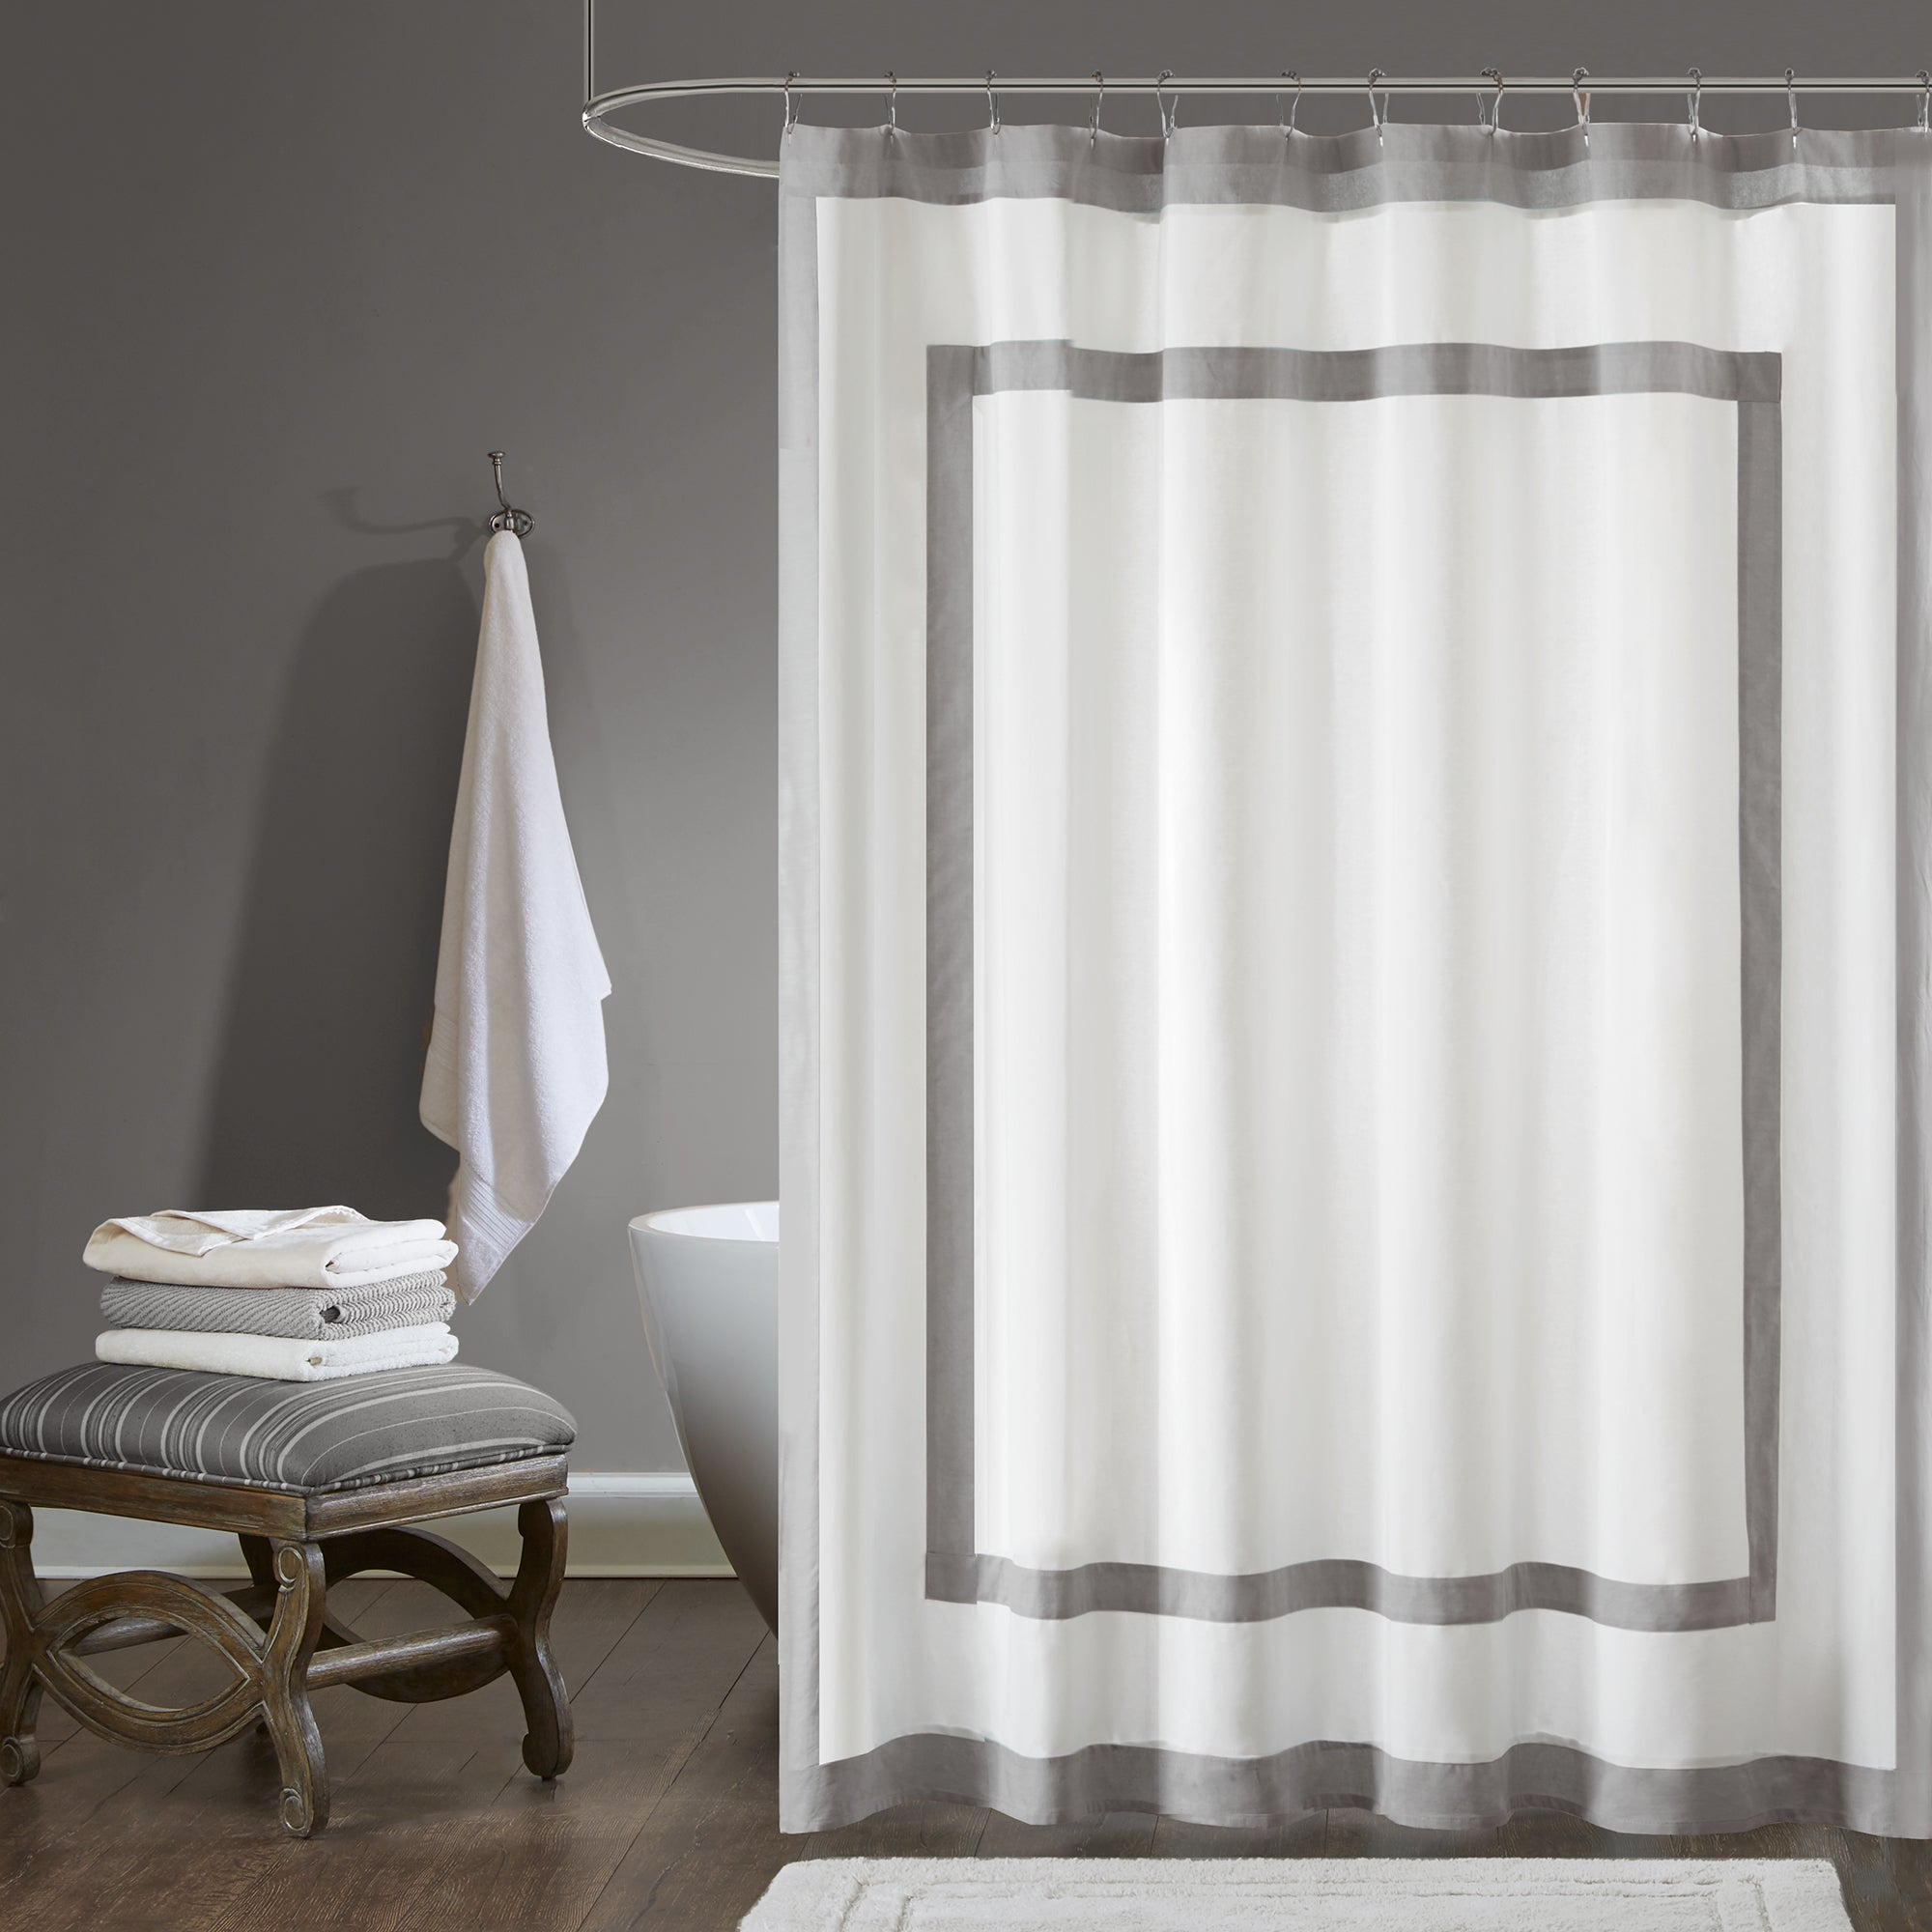 curtain kohls blue full size gray of liner grey shower and linen sets royal bright set curtains walmart